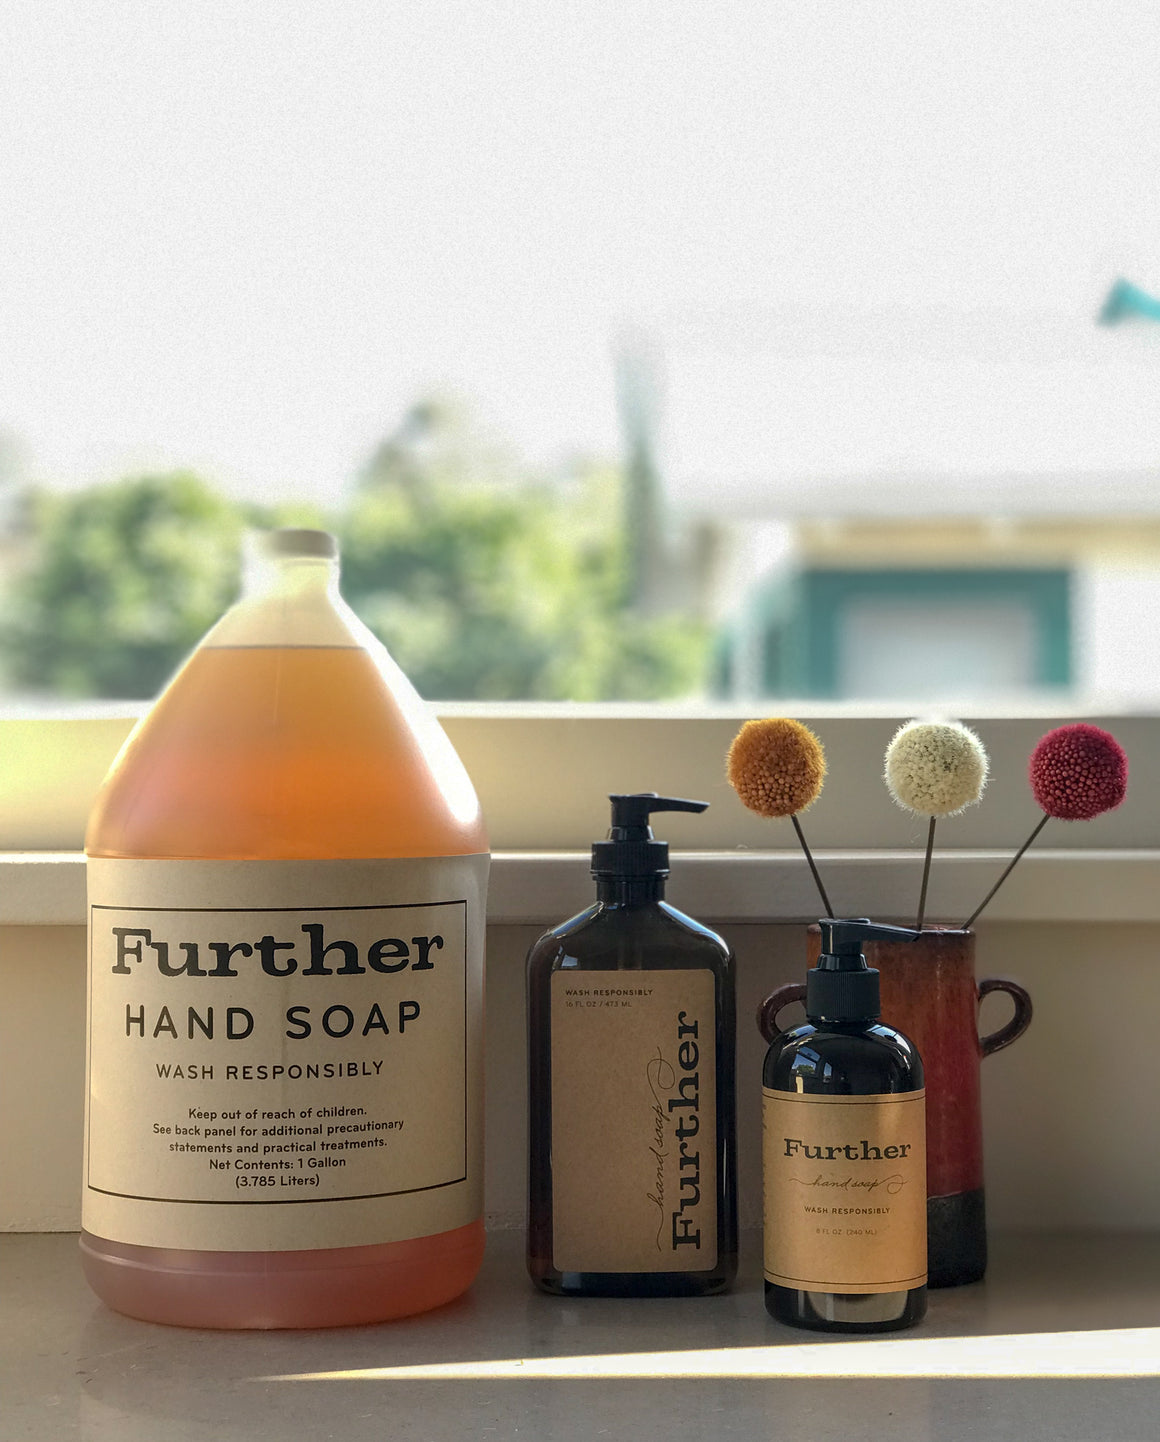 8 oz Hand Soap – Further Glycerin Soap